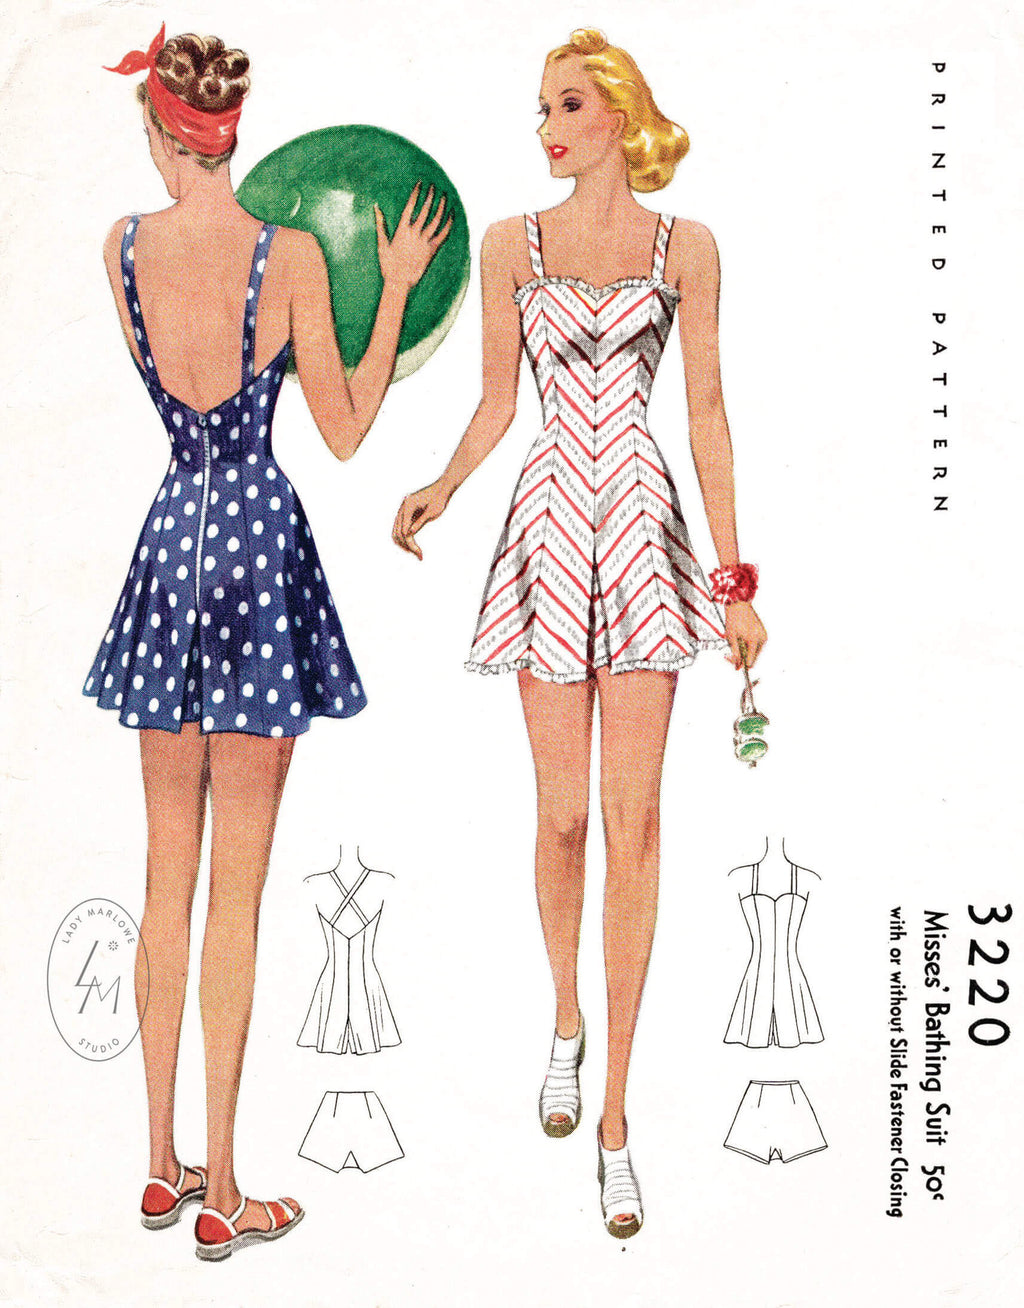 McCall 3220 1930s 1940s beachwear playsuit romper vintage sewing pattern reproduction